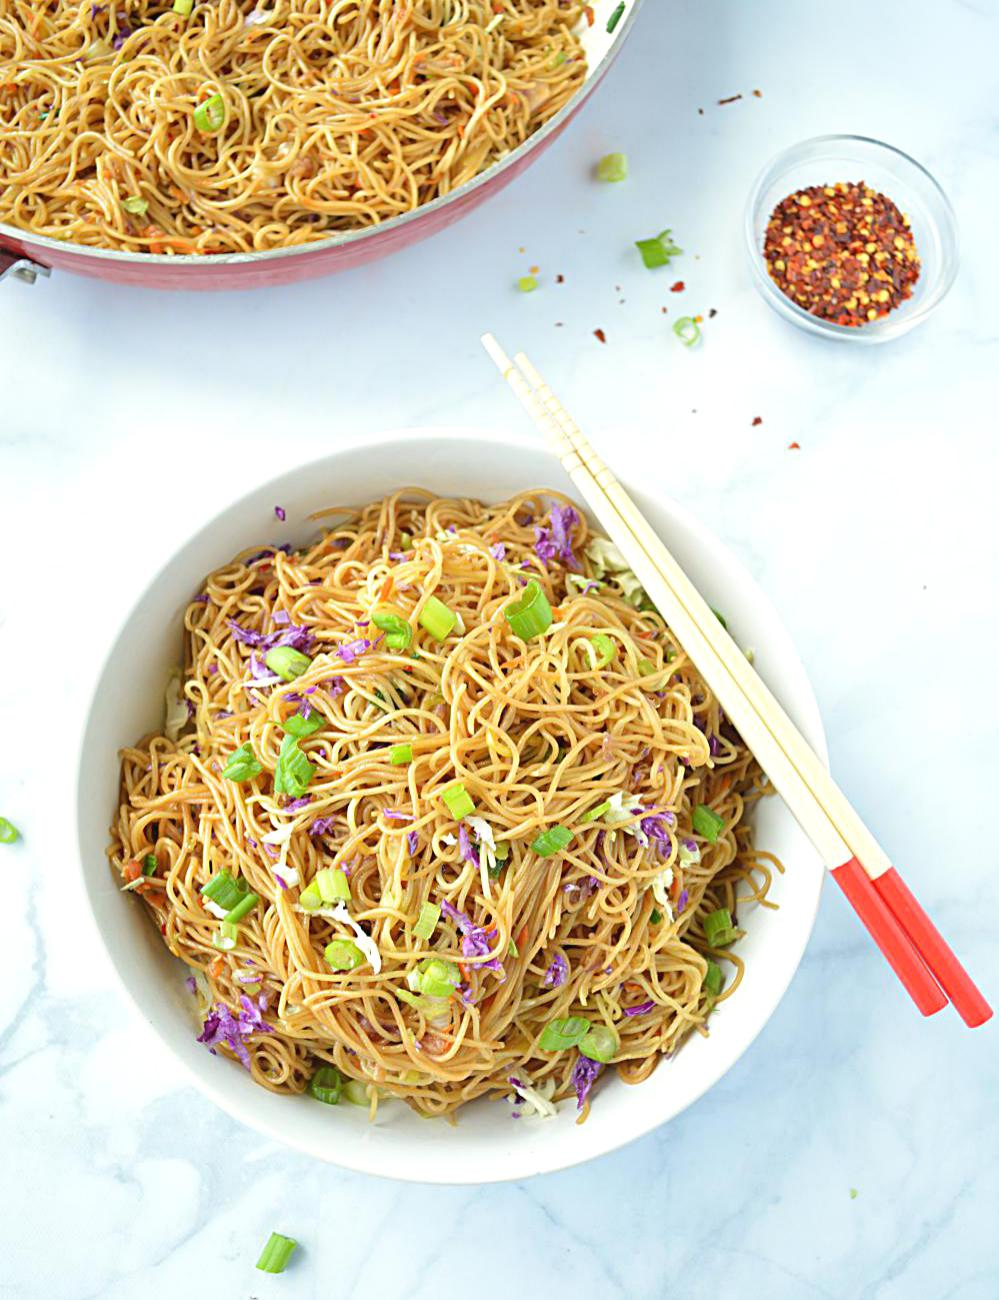 Cantonese Style Veg Noodles image